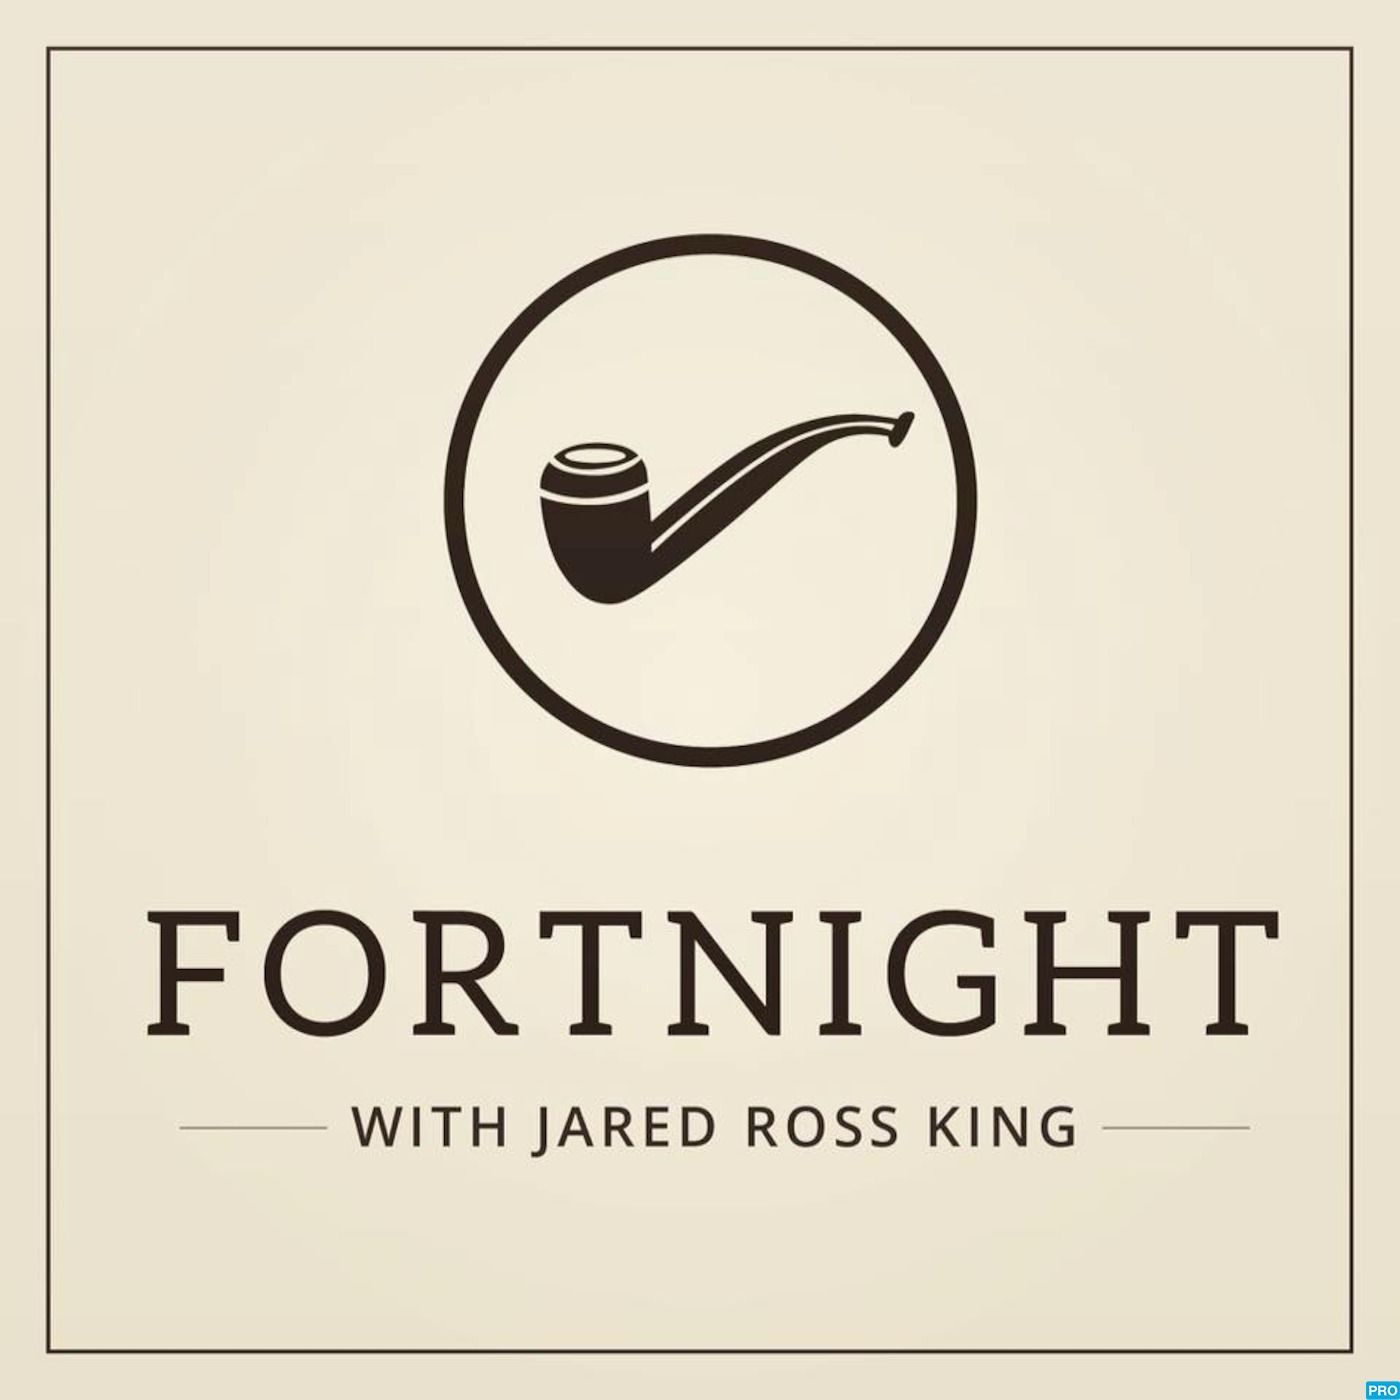 Fortnight with Jared Ross King